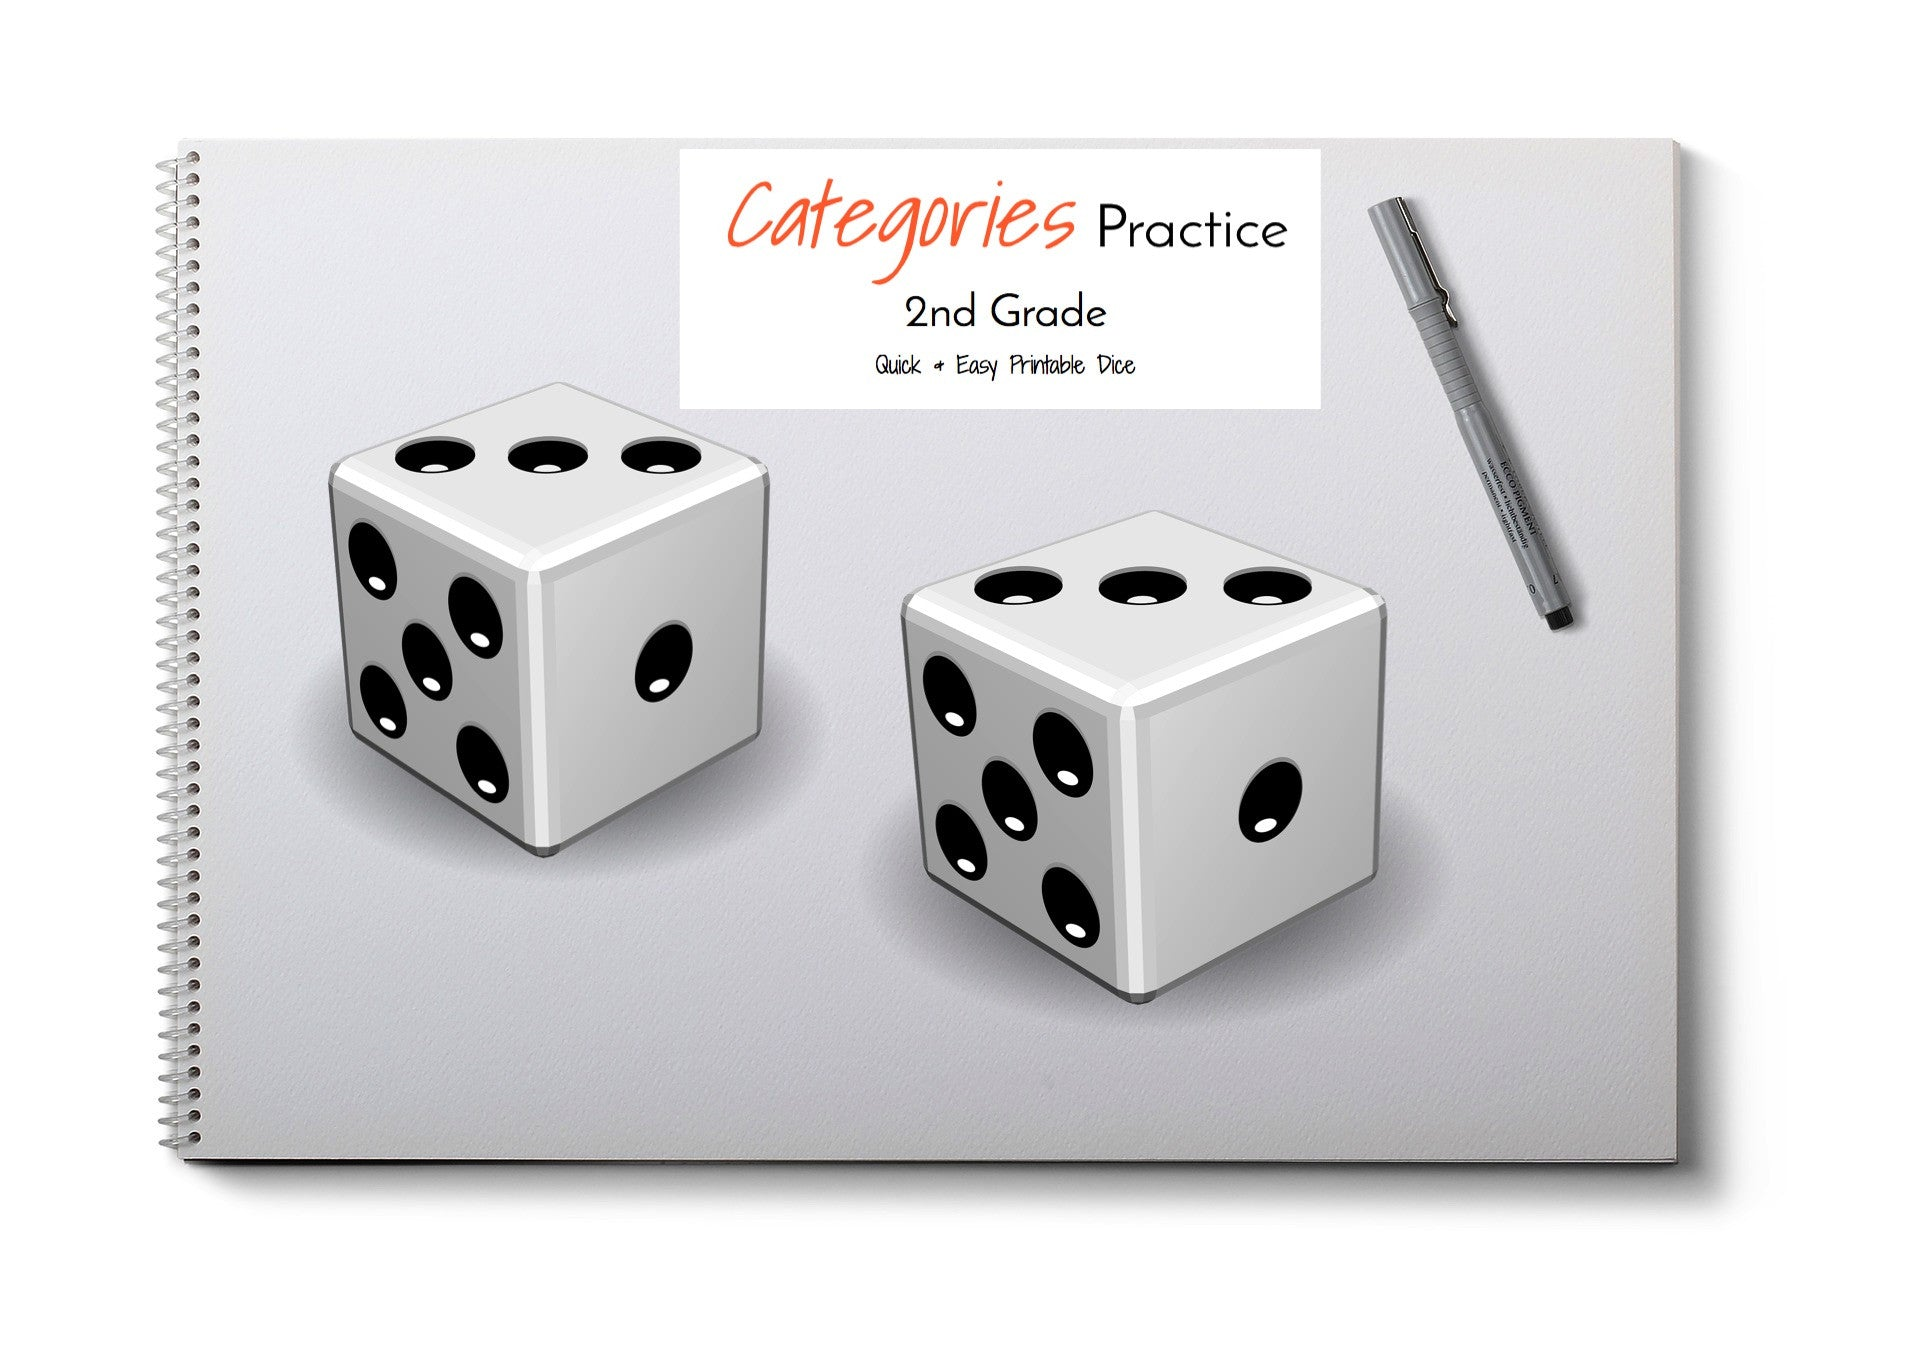 graphic regarding Printable Dice named Classification Print Fold Cube- 2nd Quality